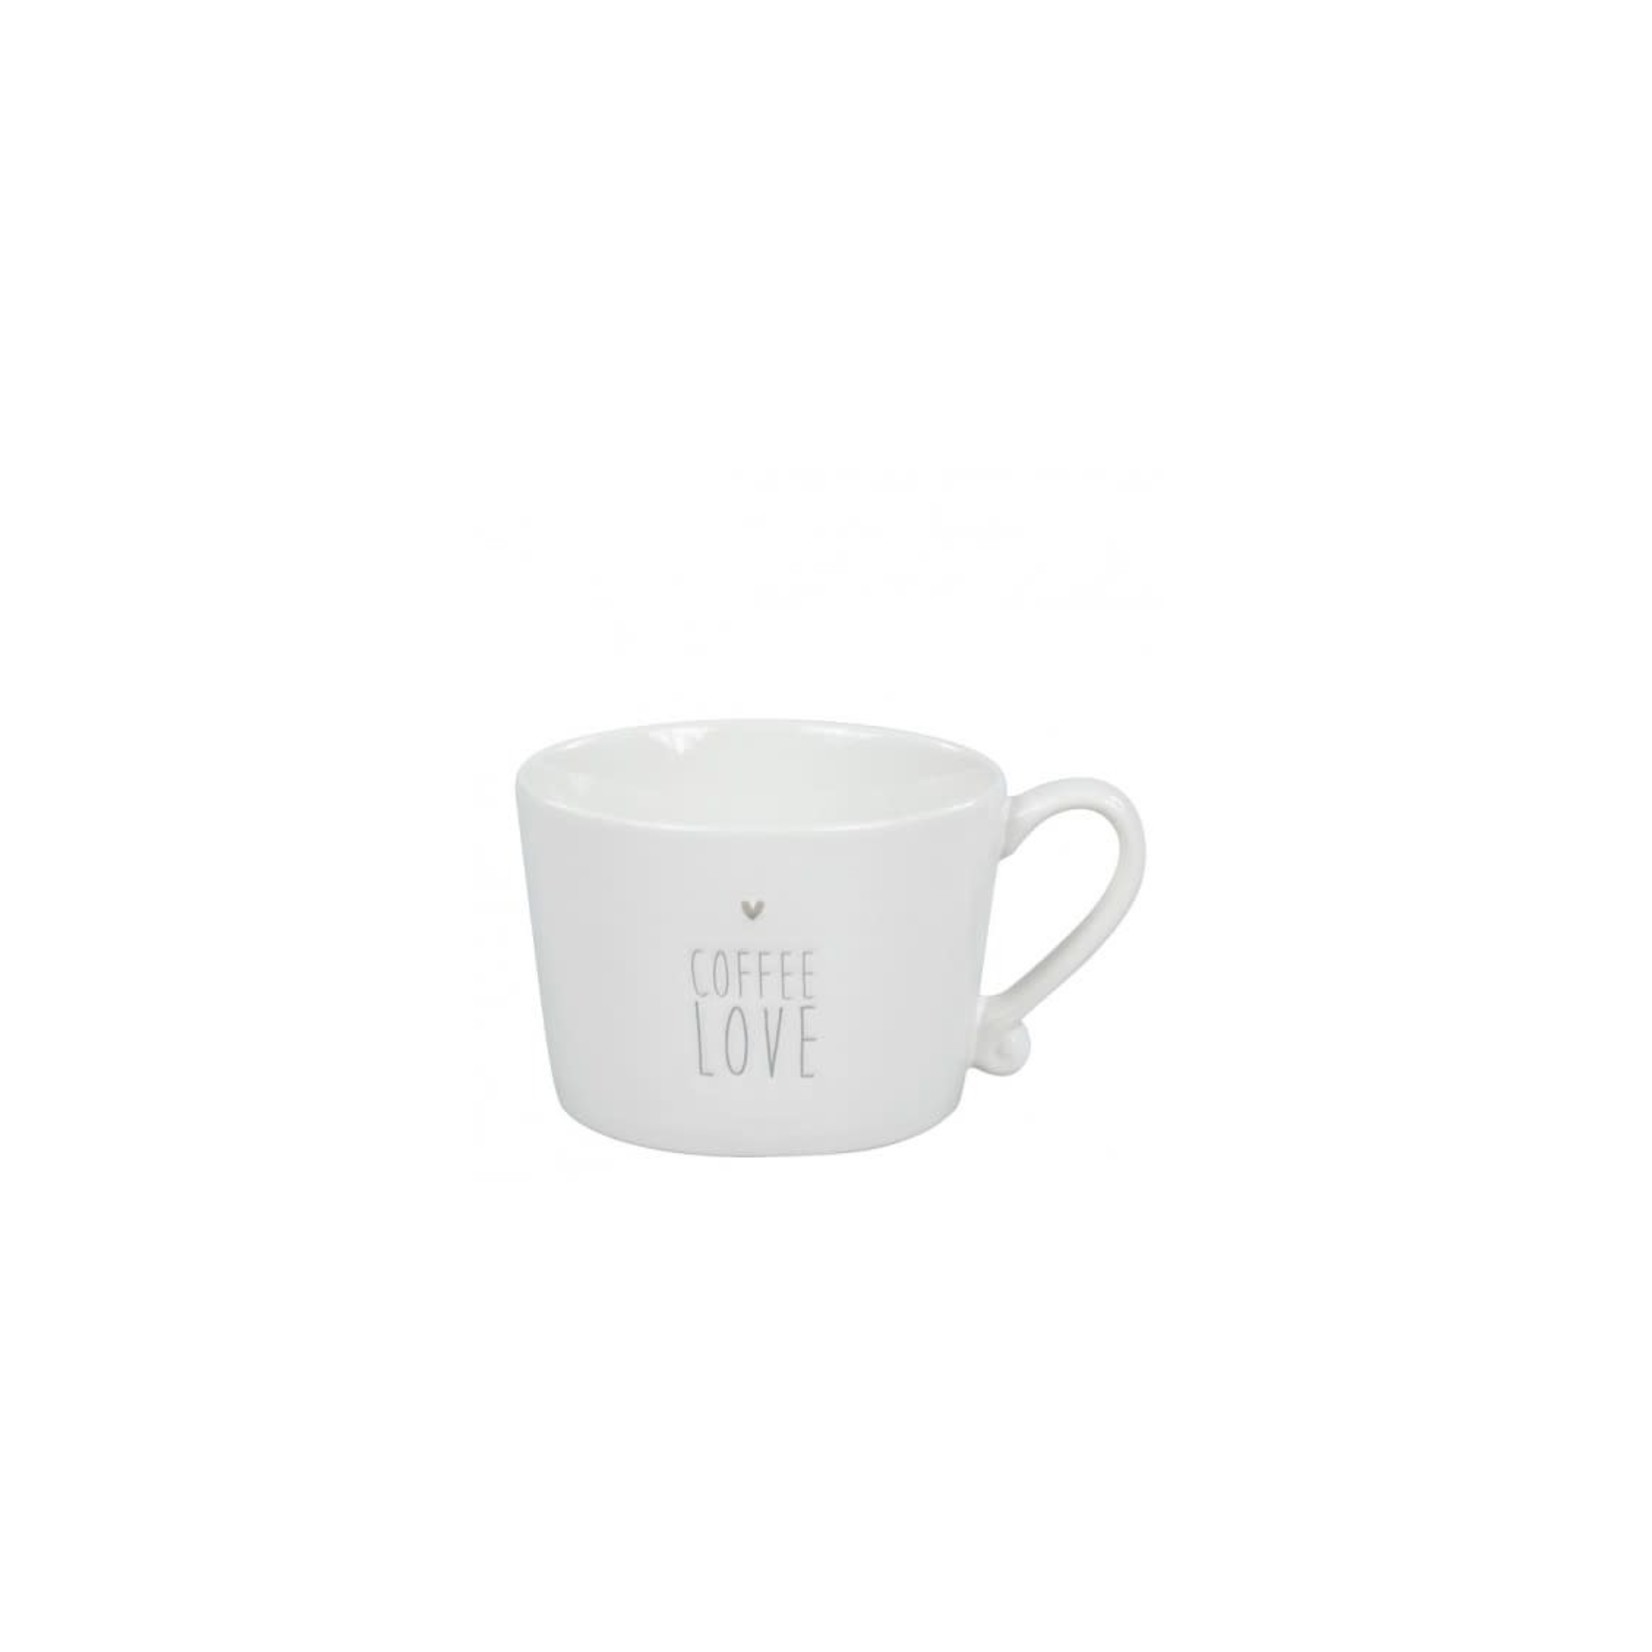 Bastion Collections Mug large White Coffee Love in Grey